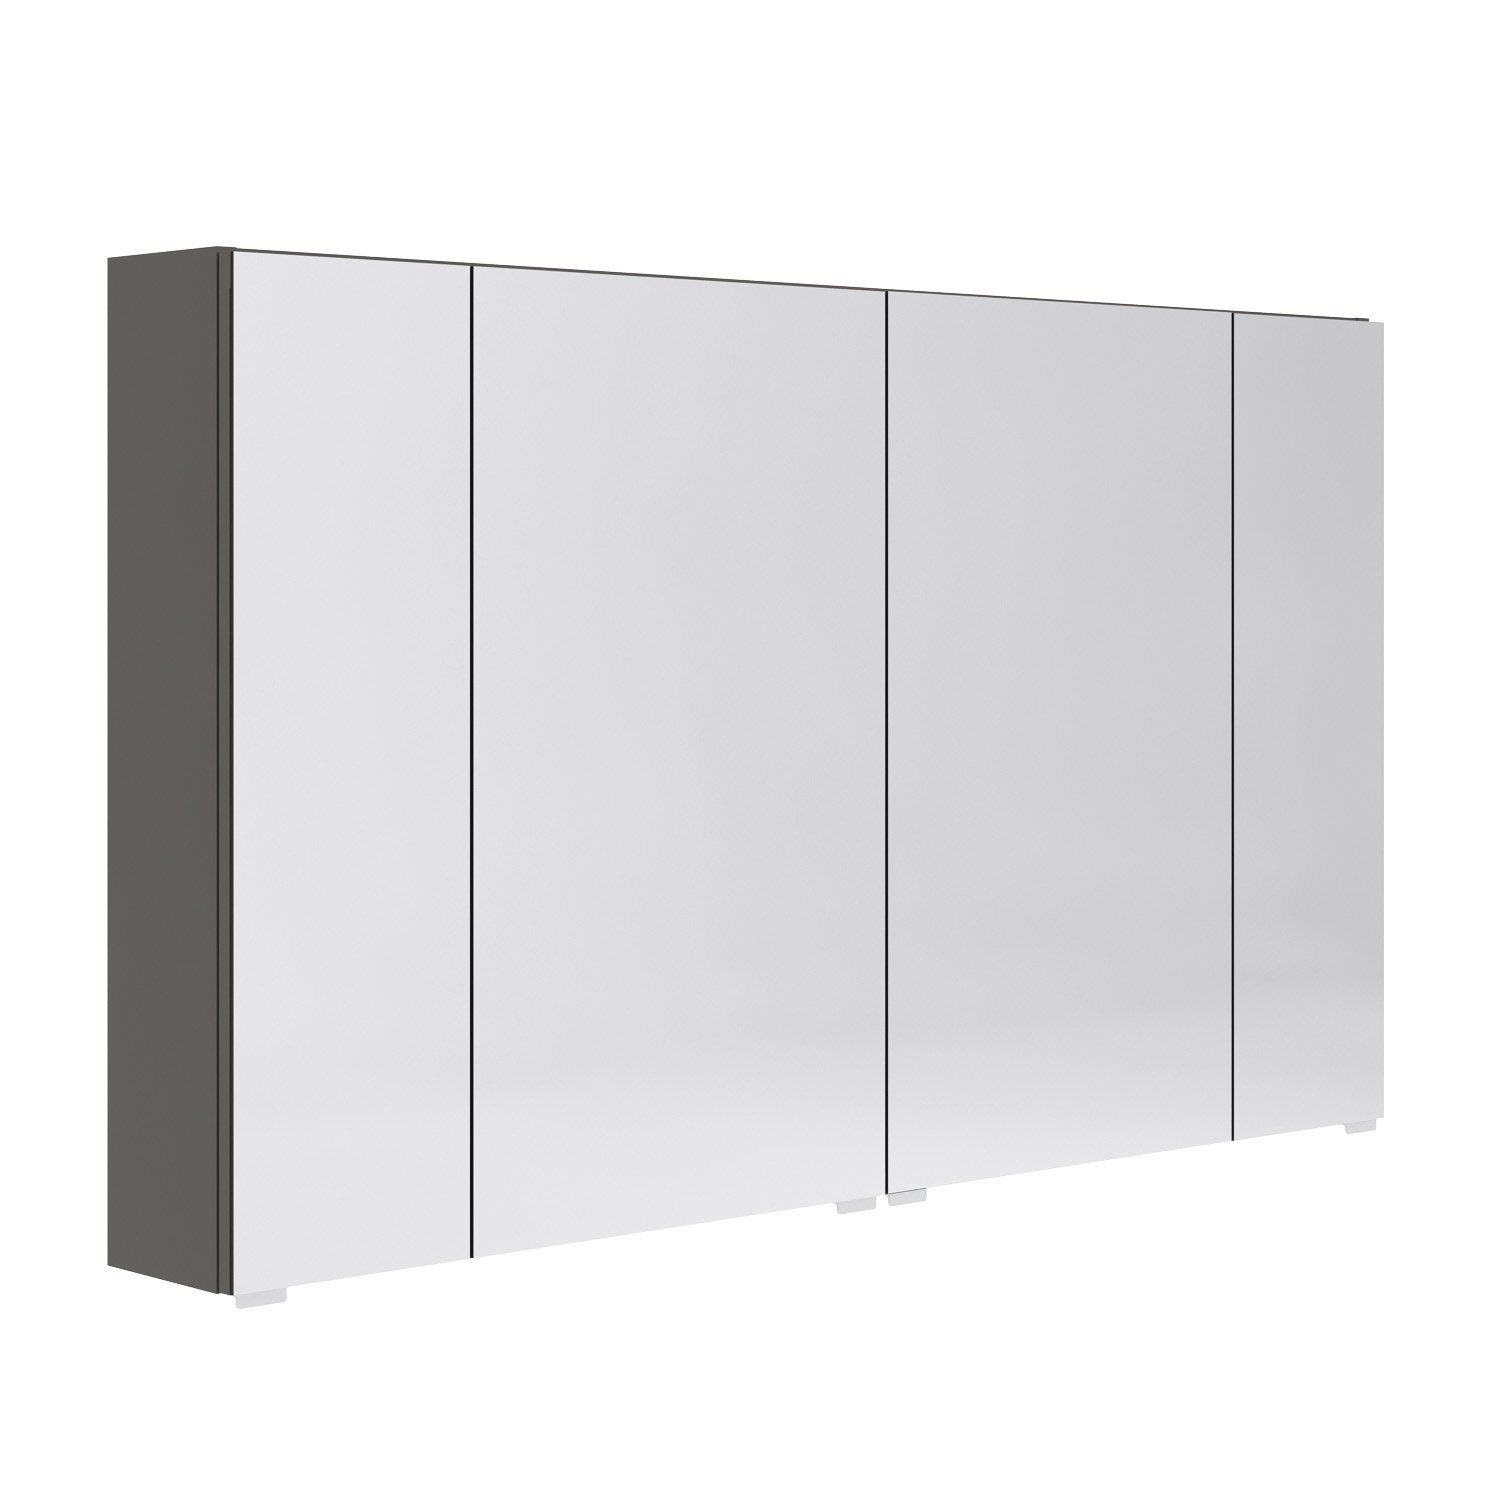 Armoire de toilette opale l120 x h70 x p15 4 cm leroy merlin for Meuble de toilette leroy merlin